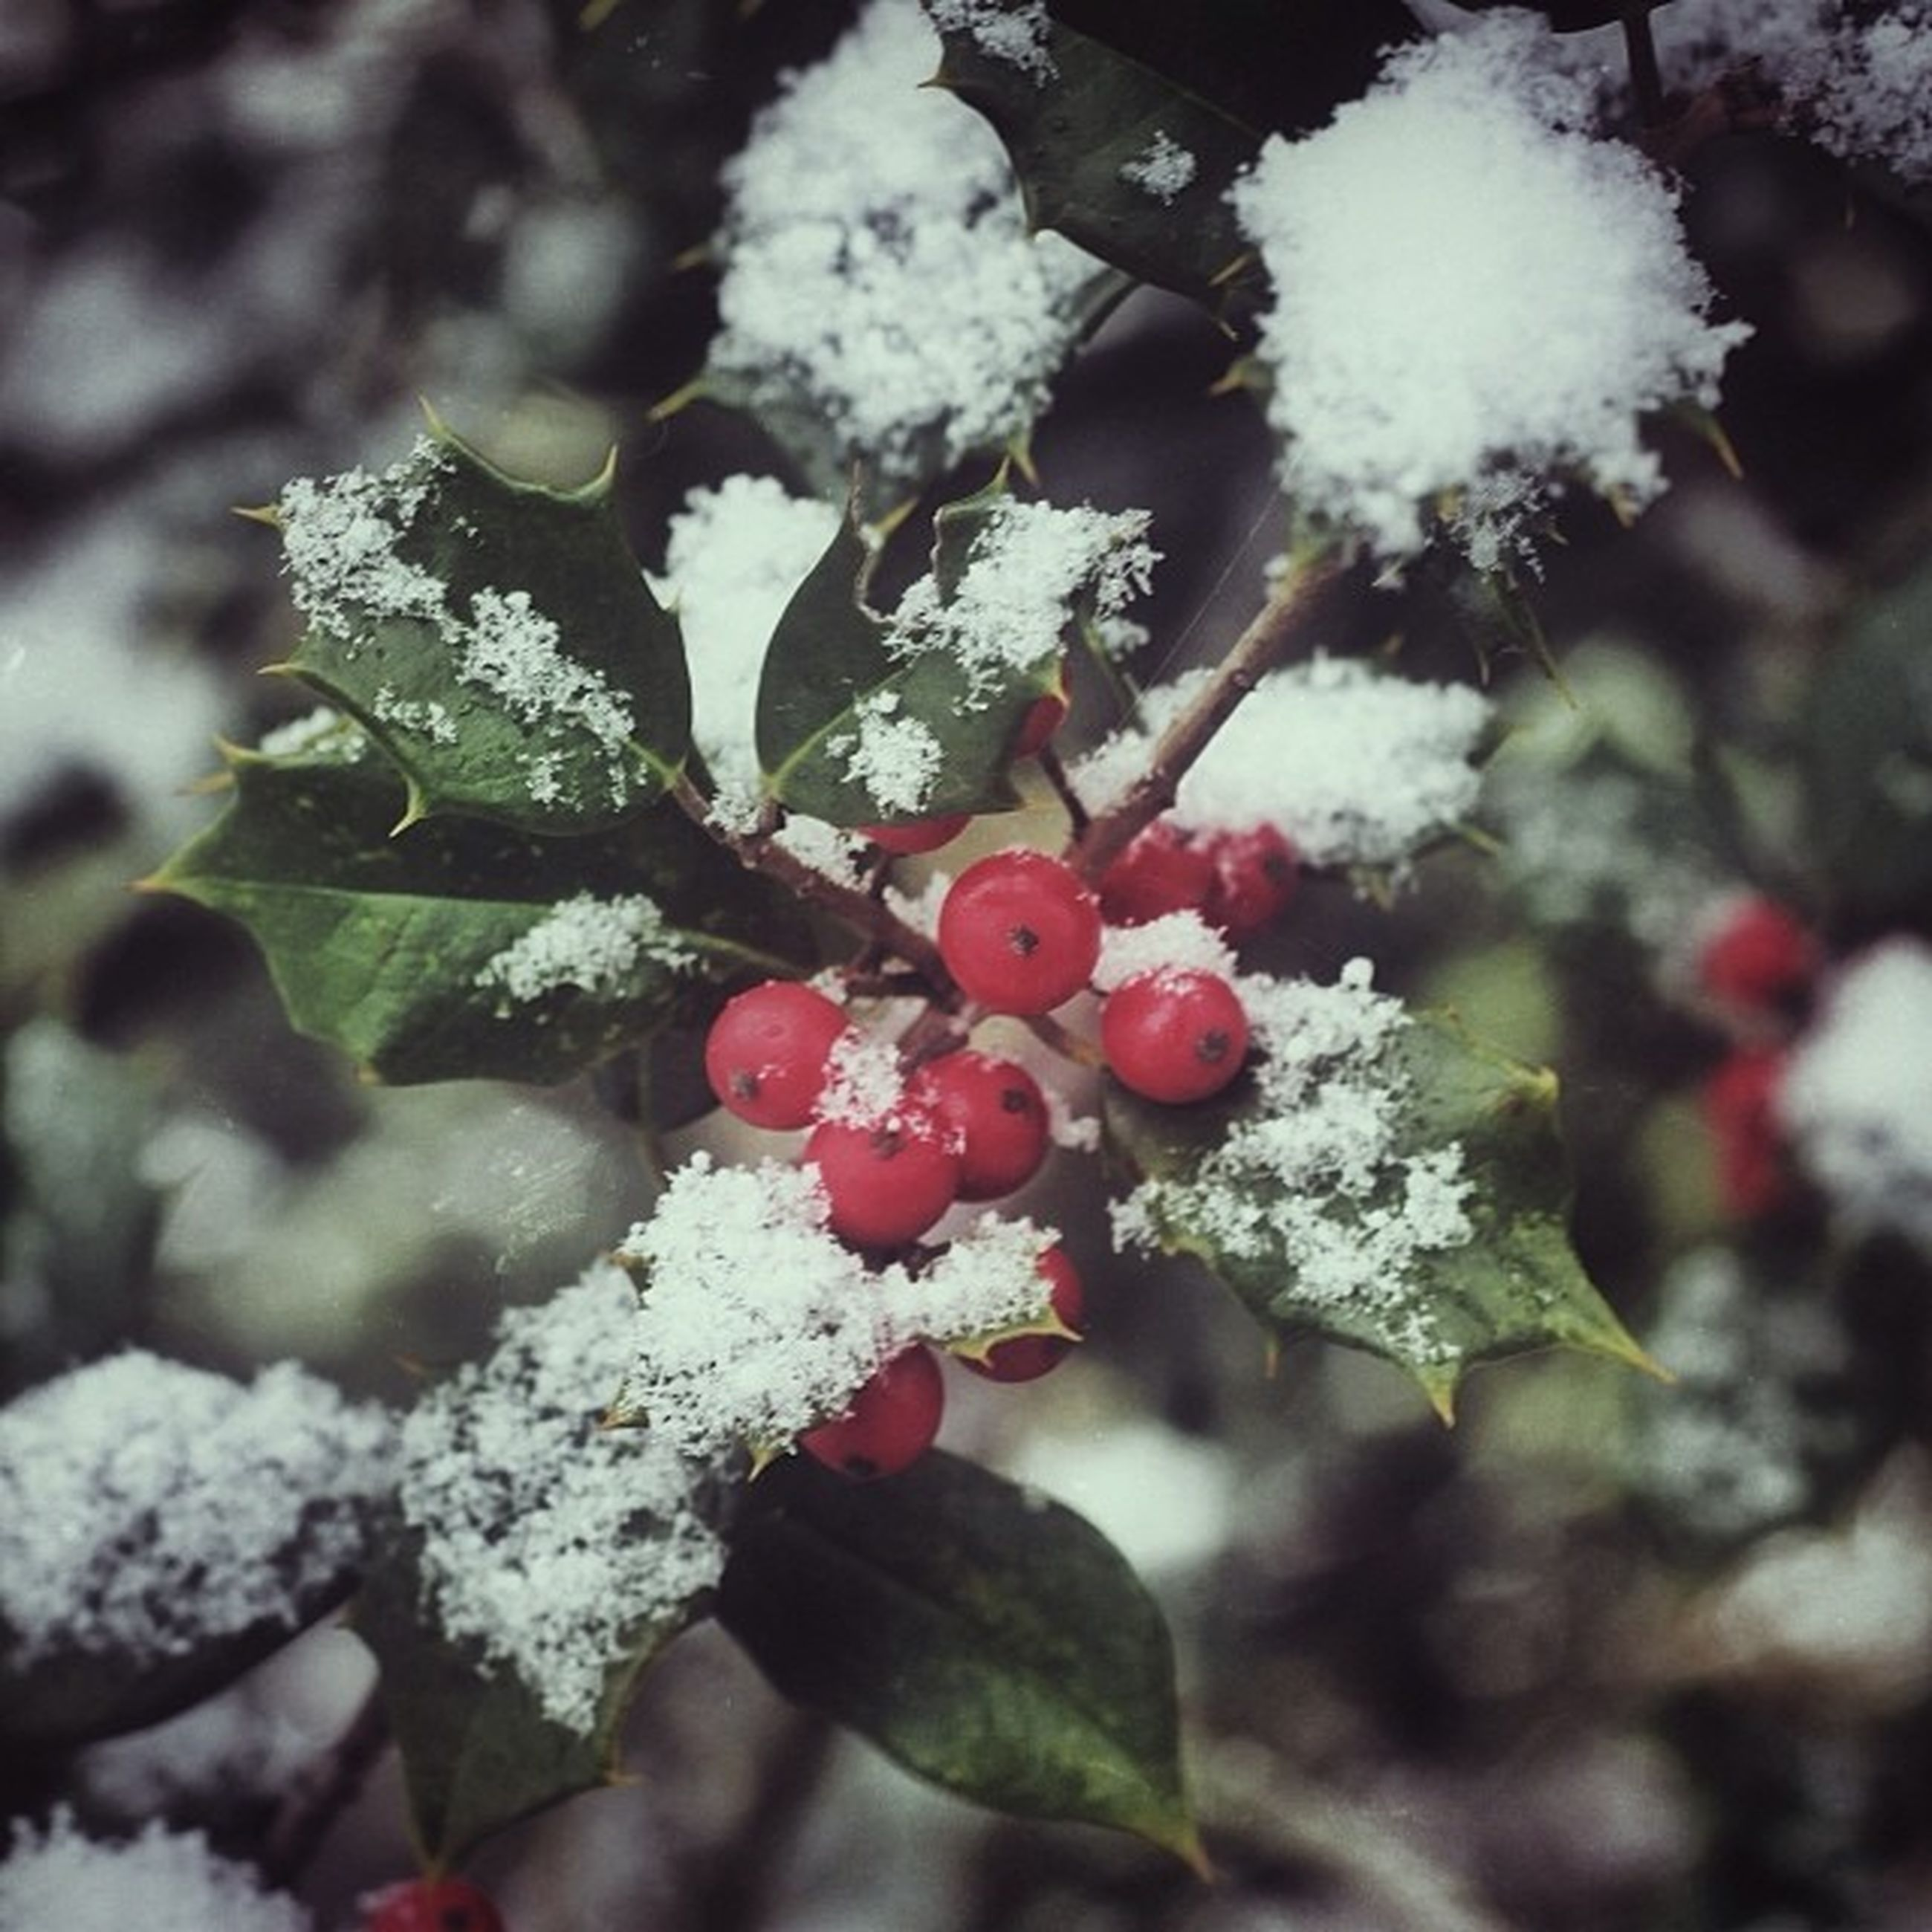 fruit, cold temperature, winter, snow, red, frozen, close-up, food and drink, freshness, focus on foreground, growth, berry fruit, branch, nature, season, food, berry, tree, weather, healthy eating